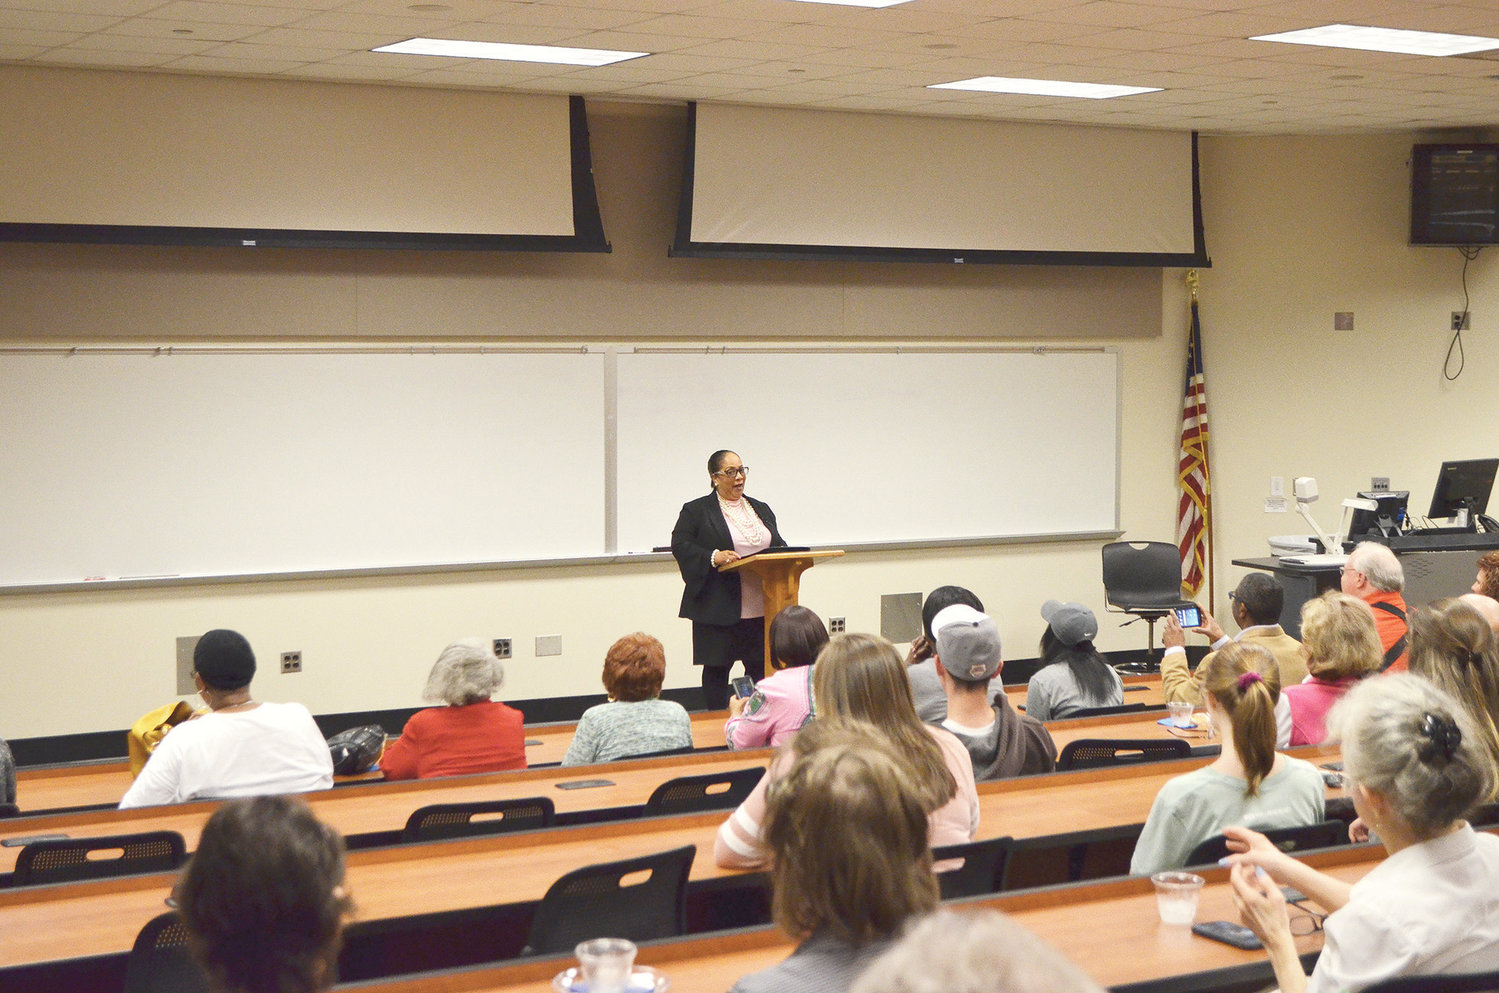 Sheyann Webb-Christburg, a civil rights activist, kicked off the 26th season of Read Alabama! on Thursday. Pictured, she speaks to a crowd at Bevill State Community College in Jasper.